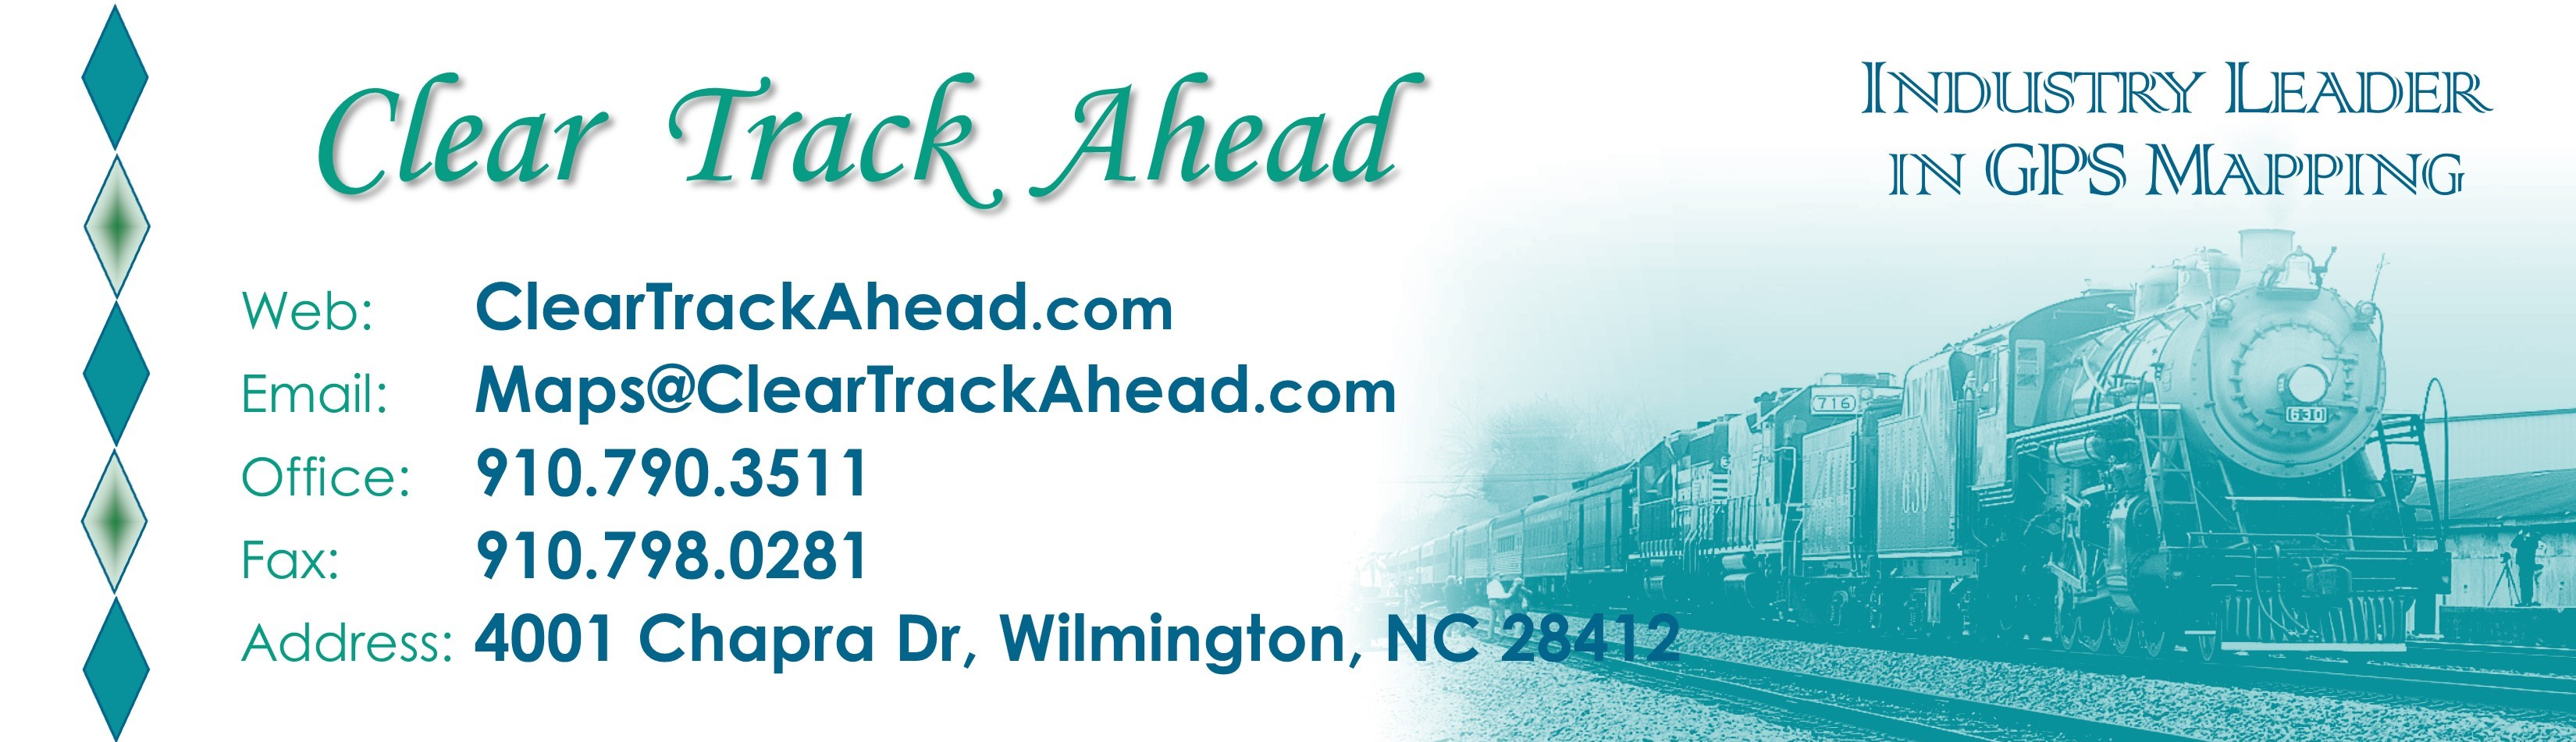 Email Signature Banner - Clear Track Ahead